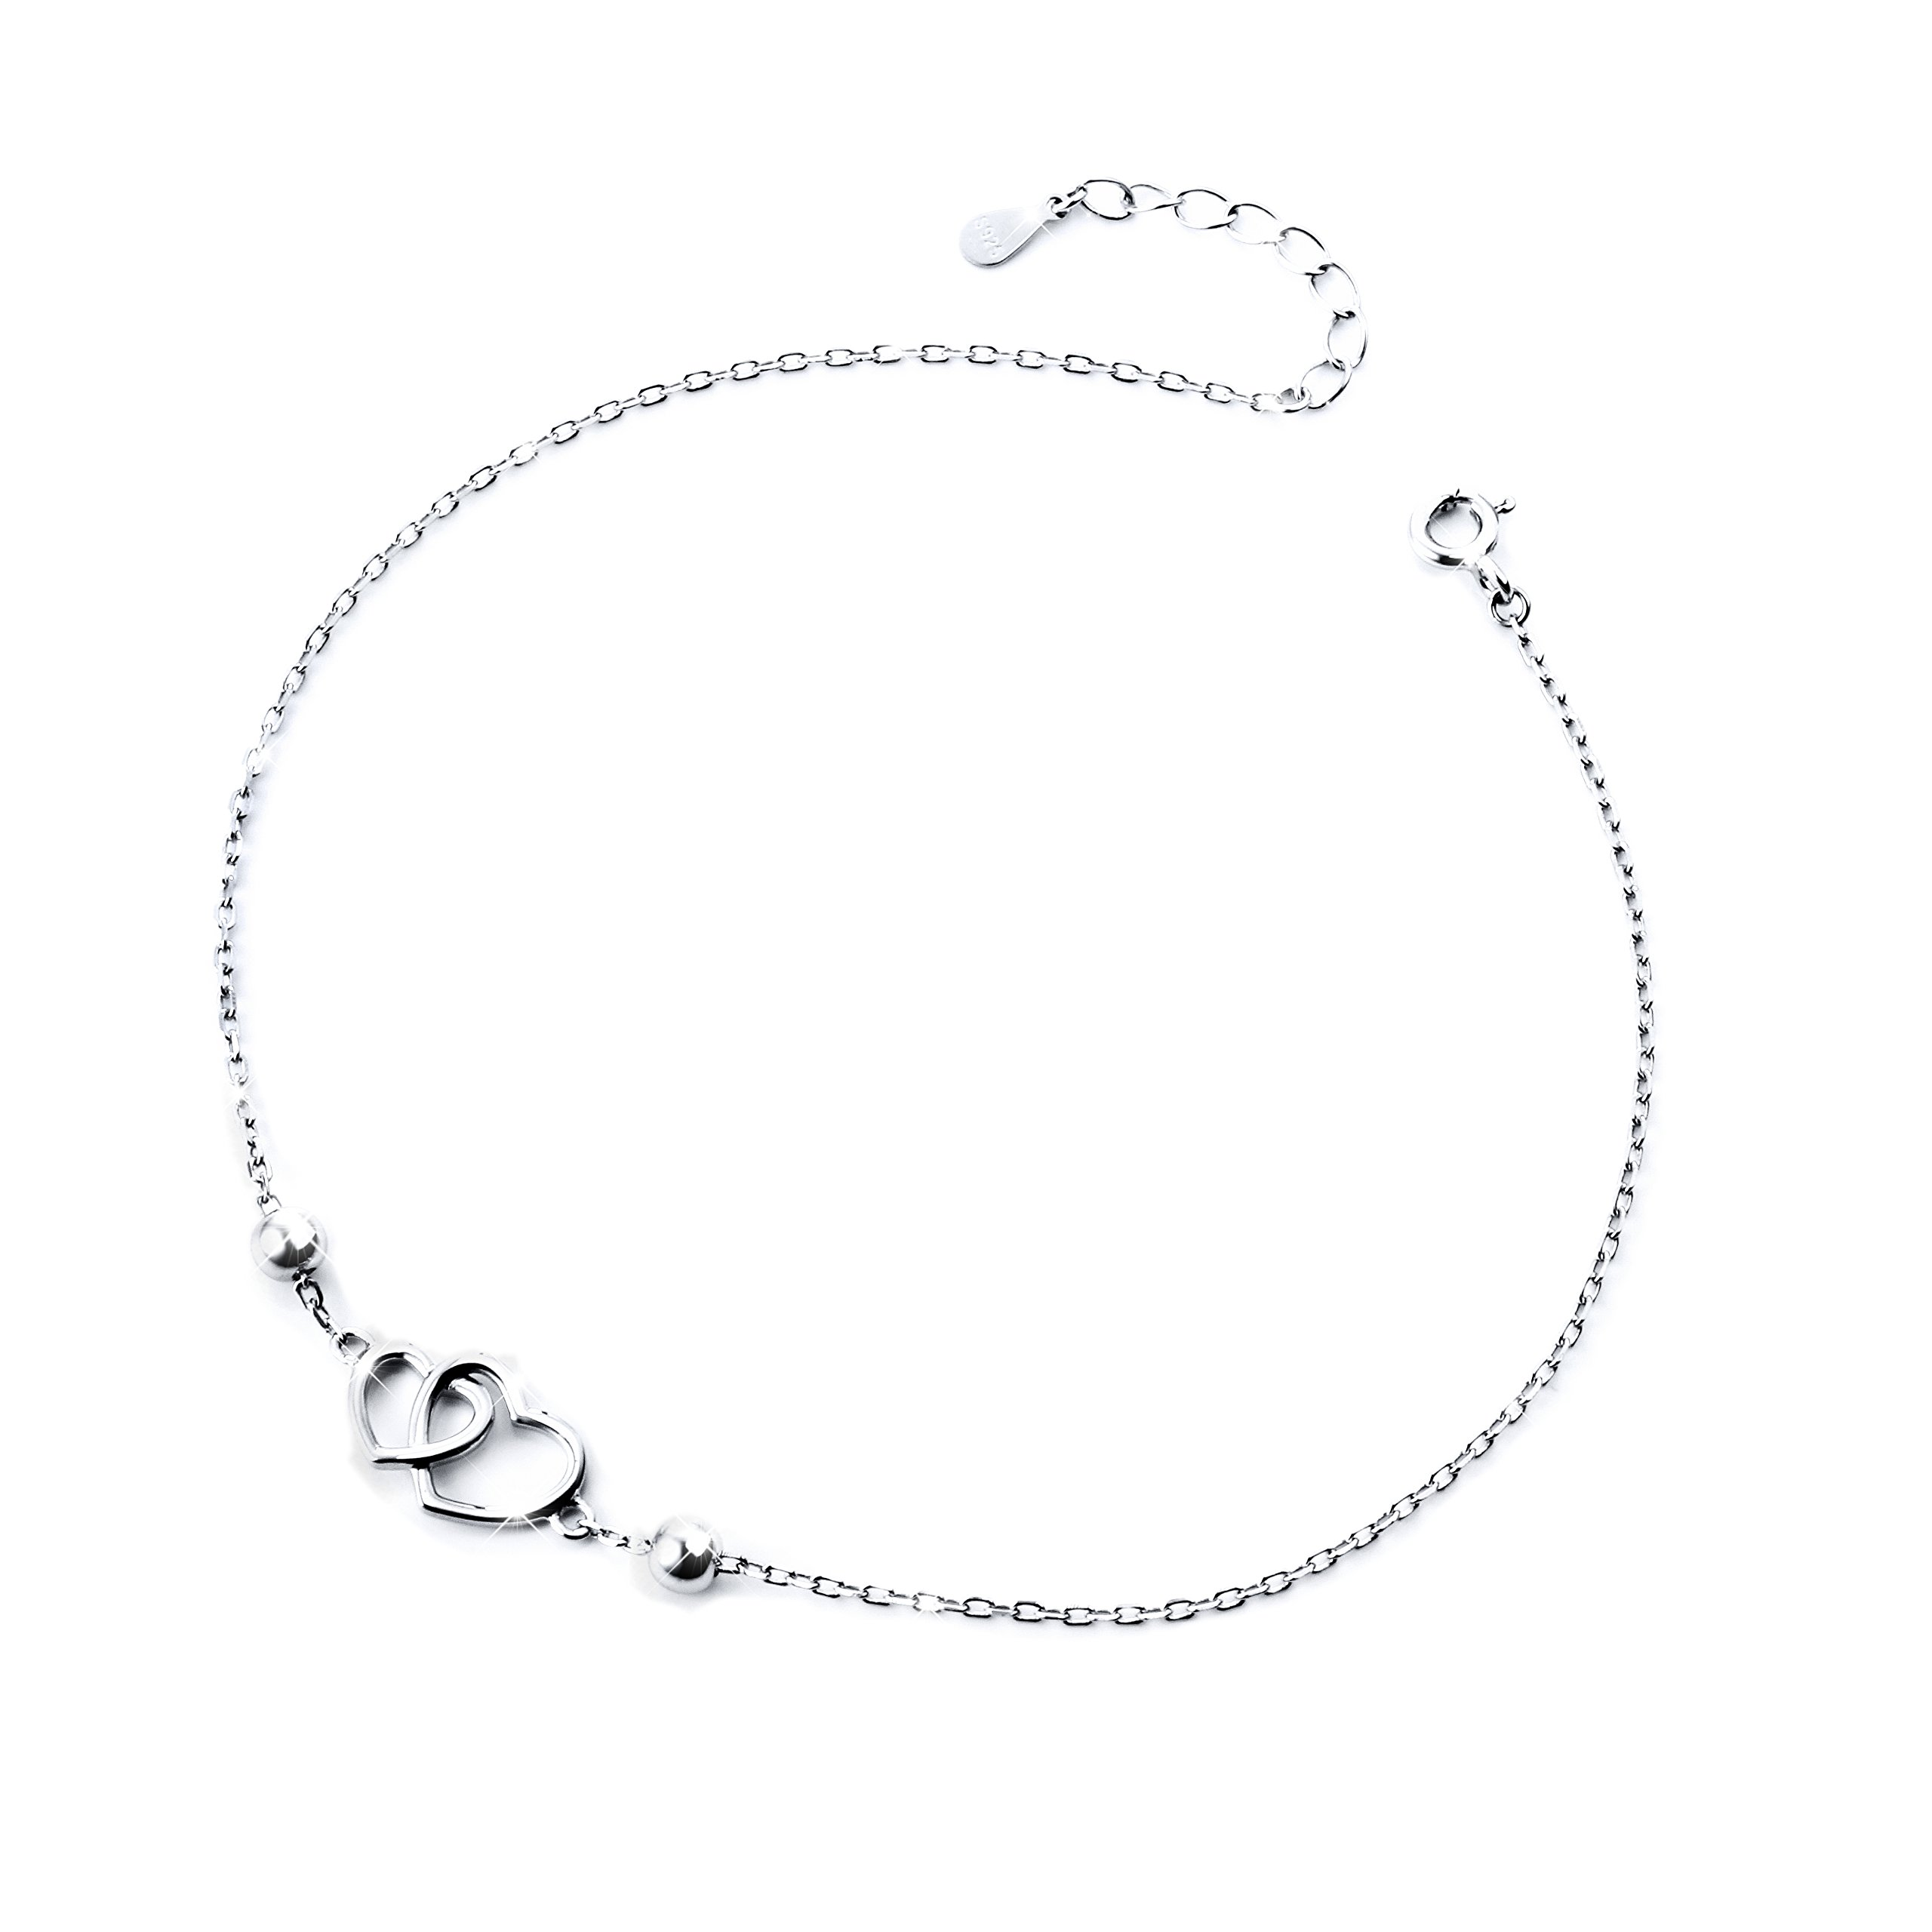 S925 Sterling Silver Double Heart Anklets for Women Adjustable Foot Ankle bracelet